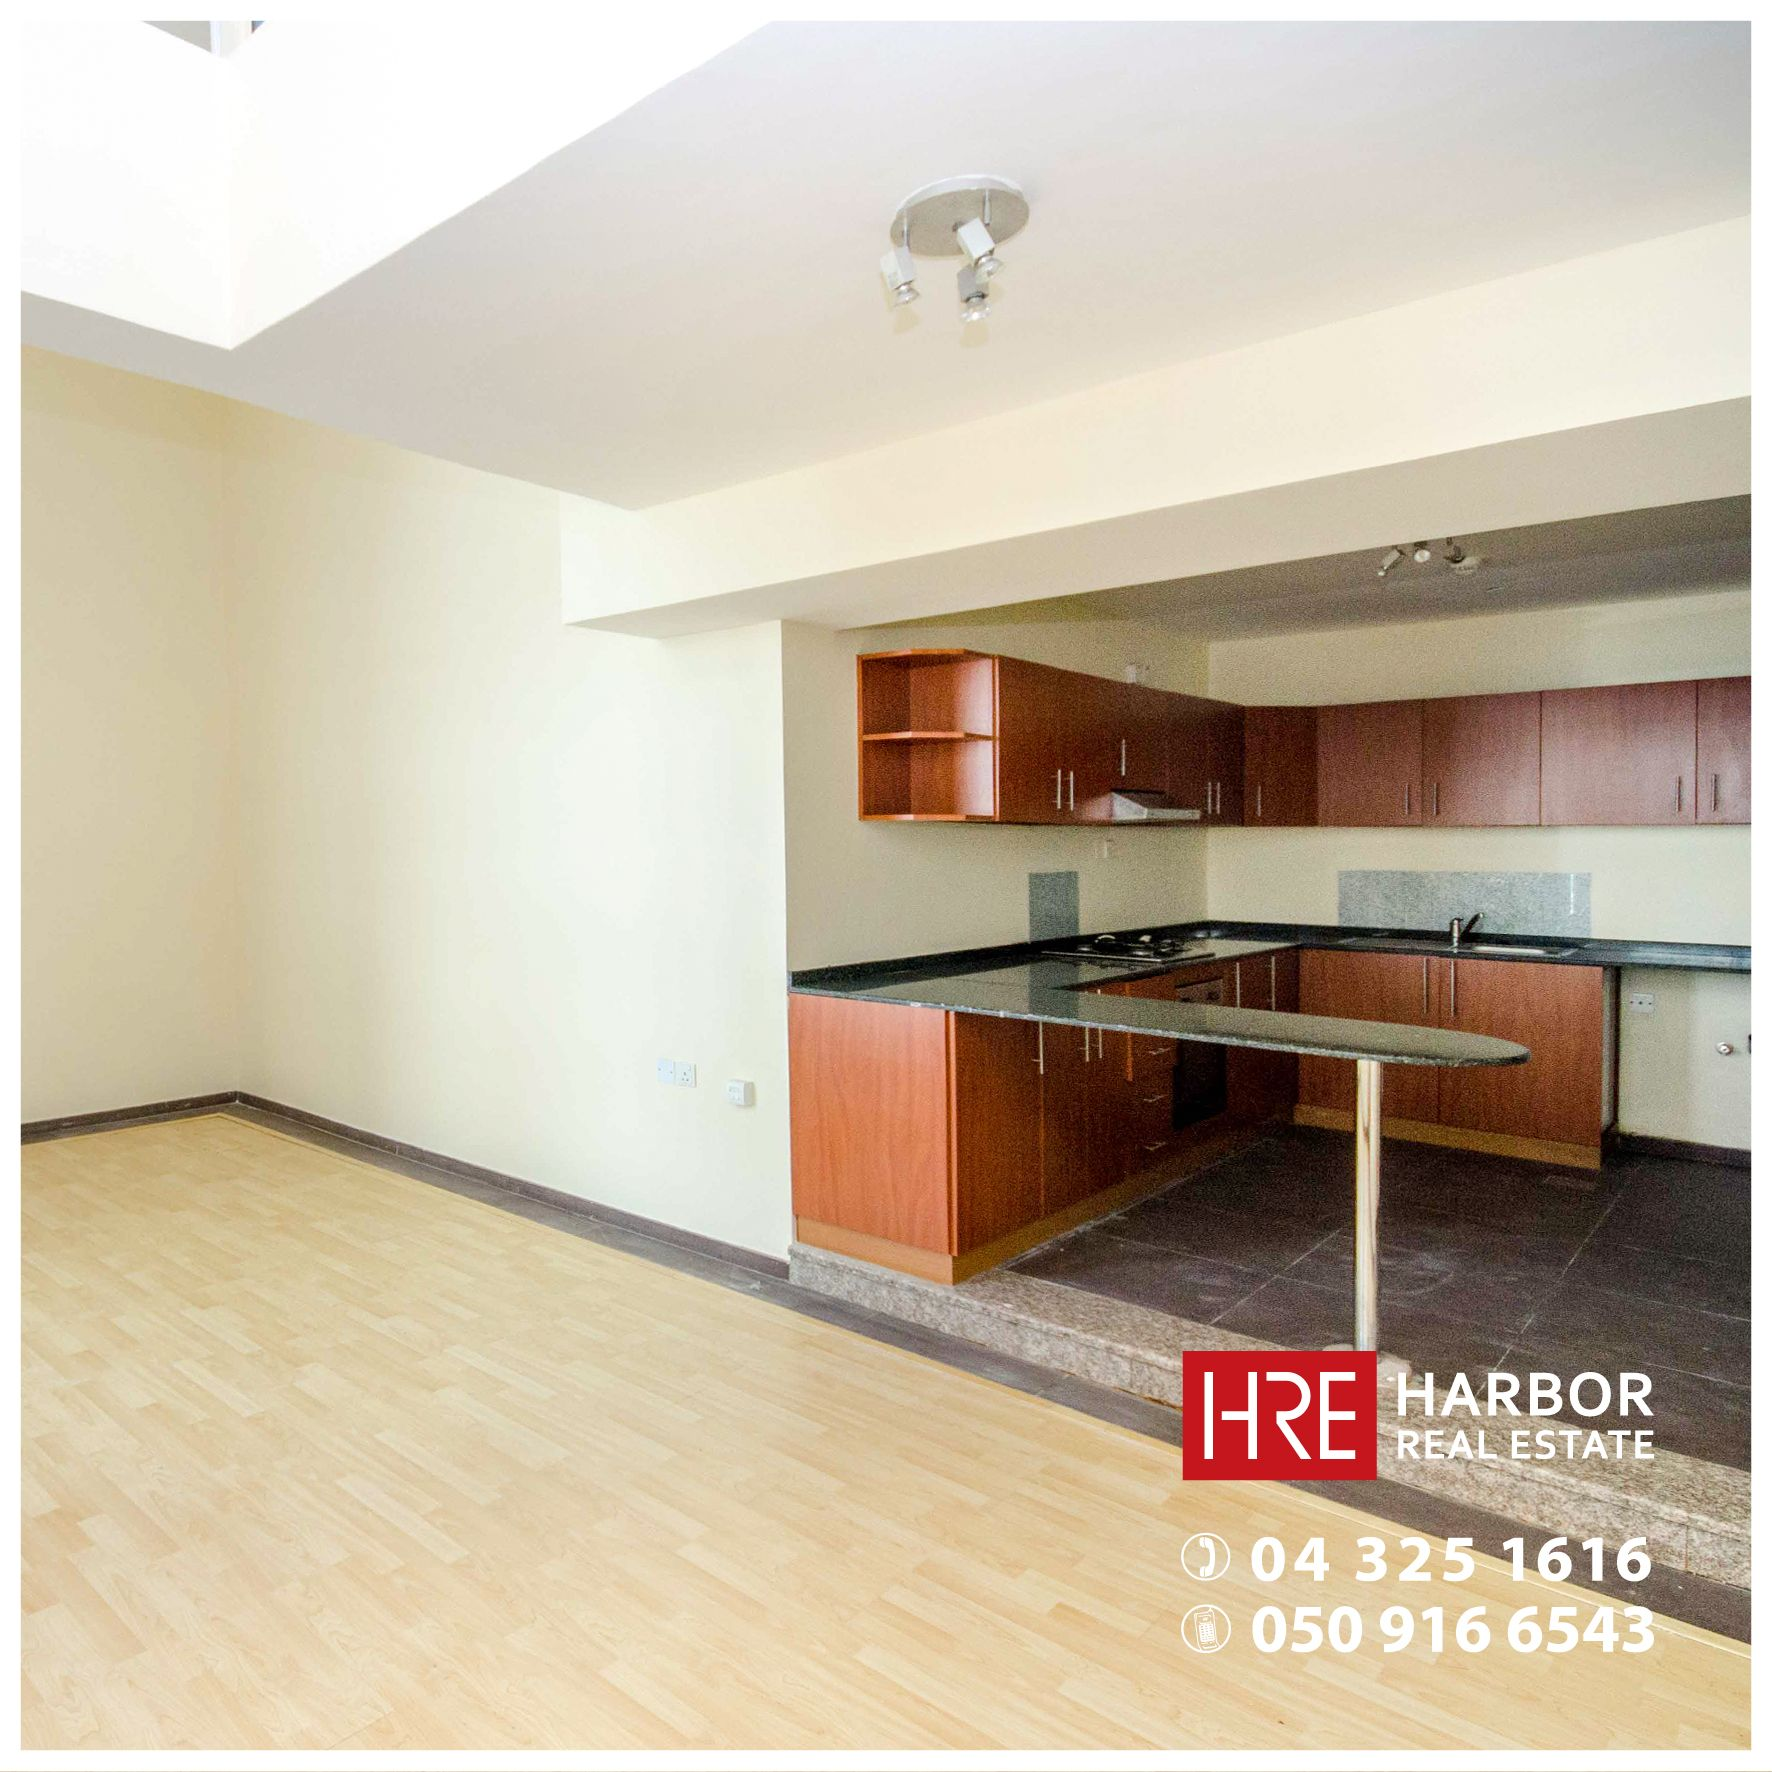 One Bedroom Apartment For Rent In Dubai Monthly With Short Term